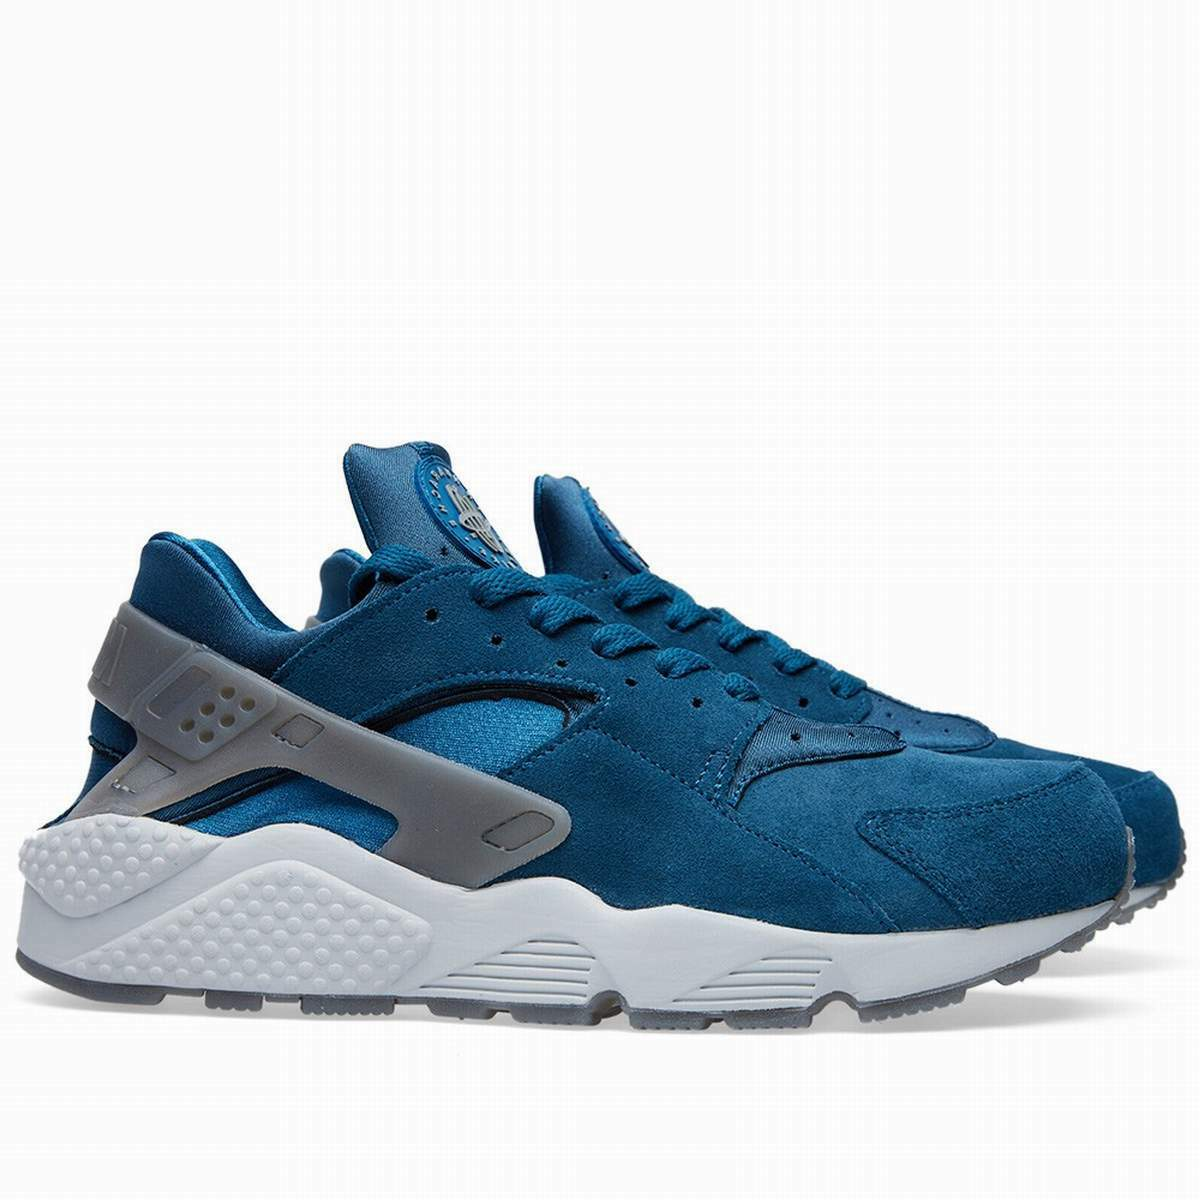 Nike Air Huarache Blue Force Force Force & Cool Grey 318429-403 (PTI) 081a67